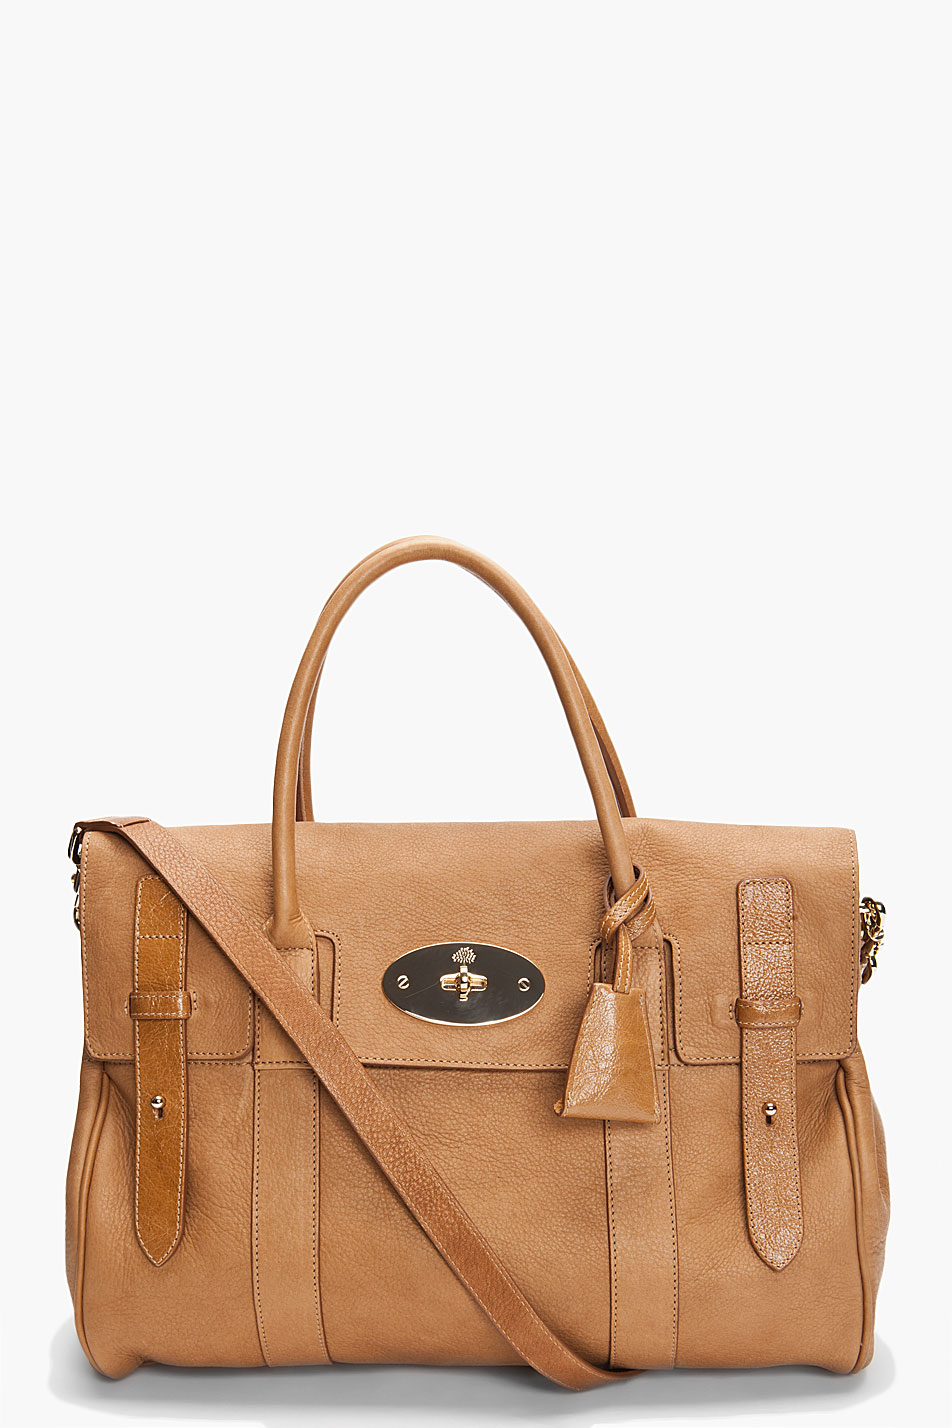 de1a77095a93 Mulberry Heritage Bayswater Satchel in Brown